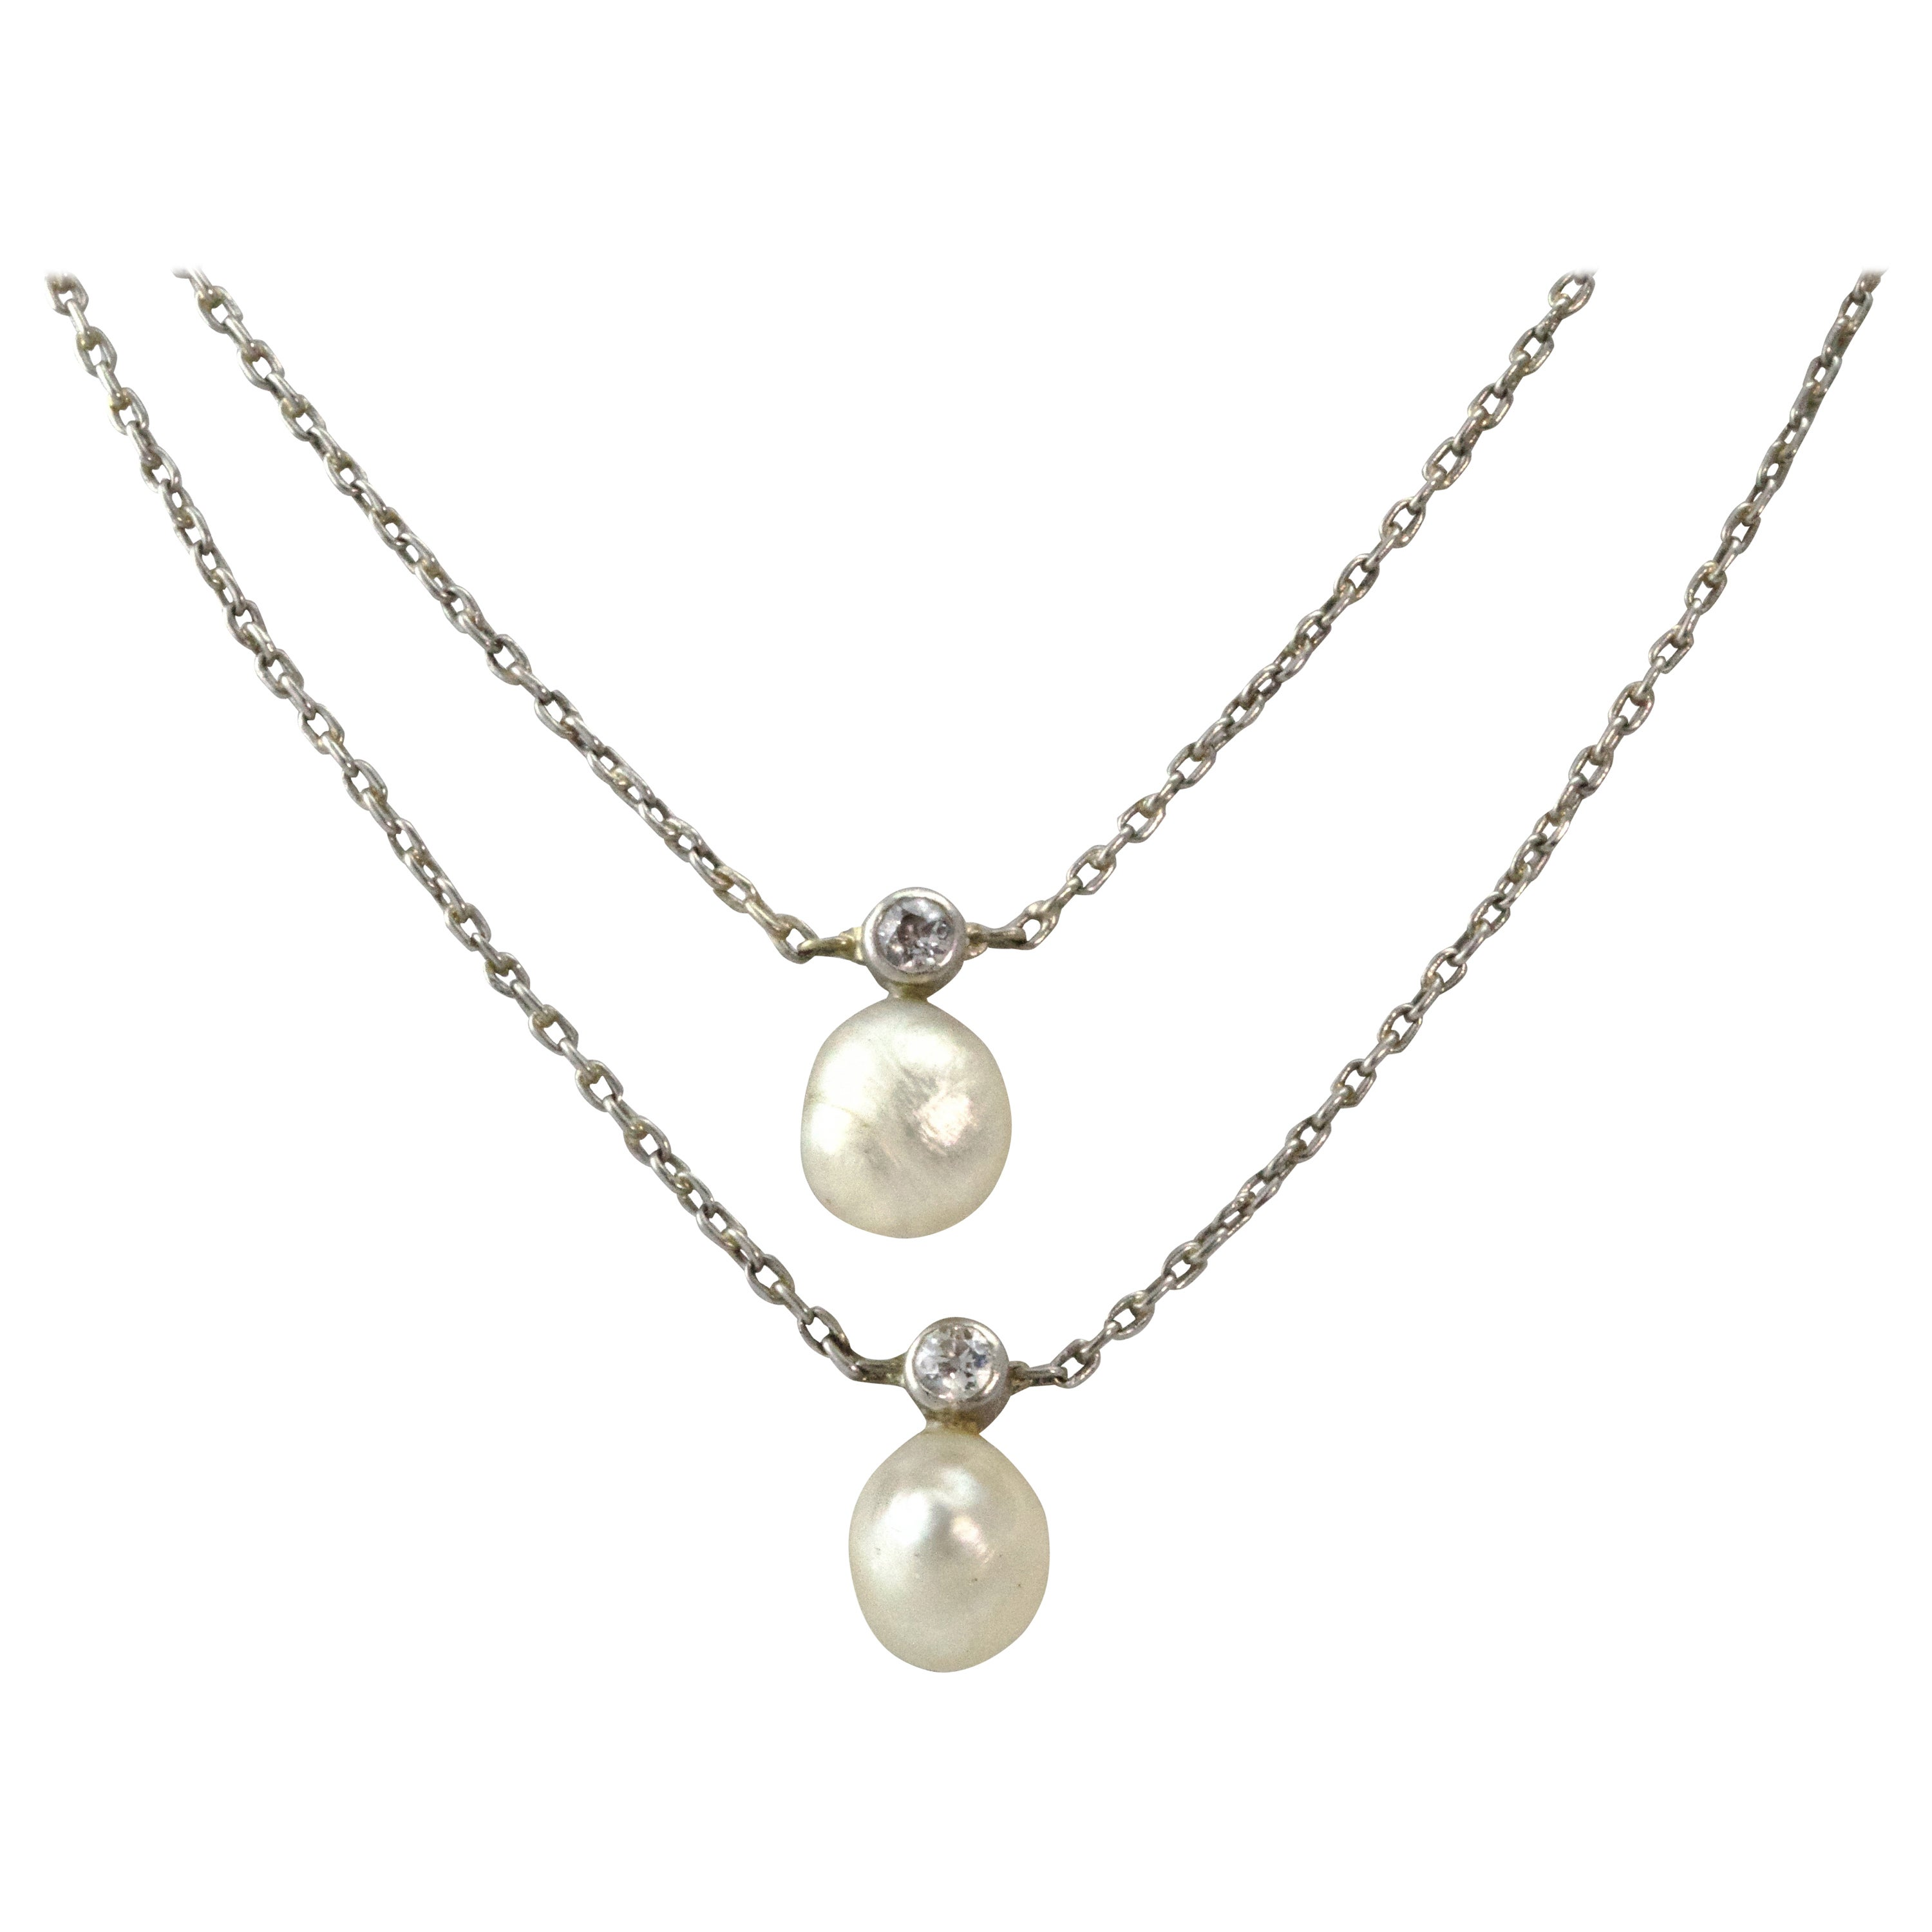 Edwardian Platinum Diamond and Pearl Double Strand Necklace